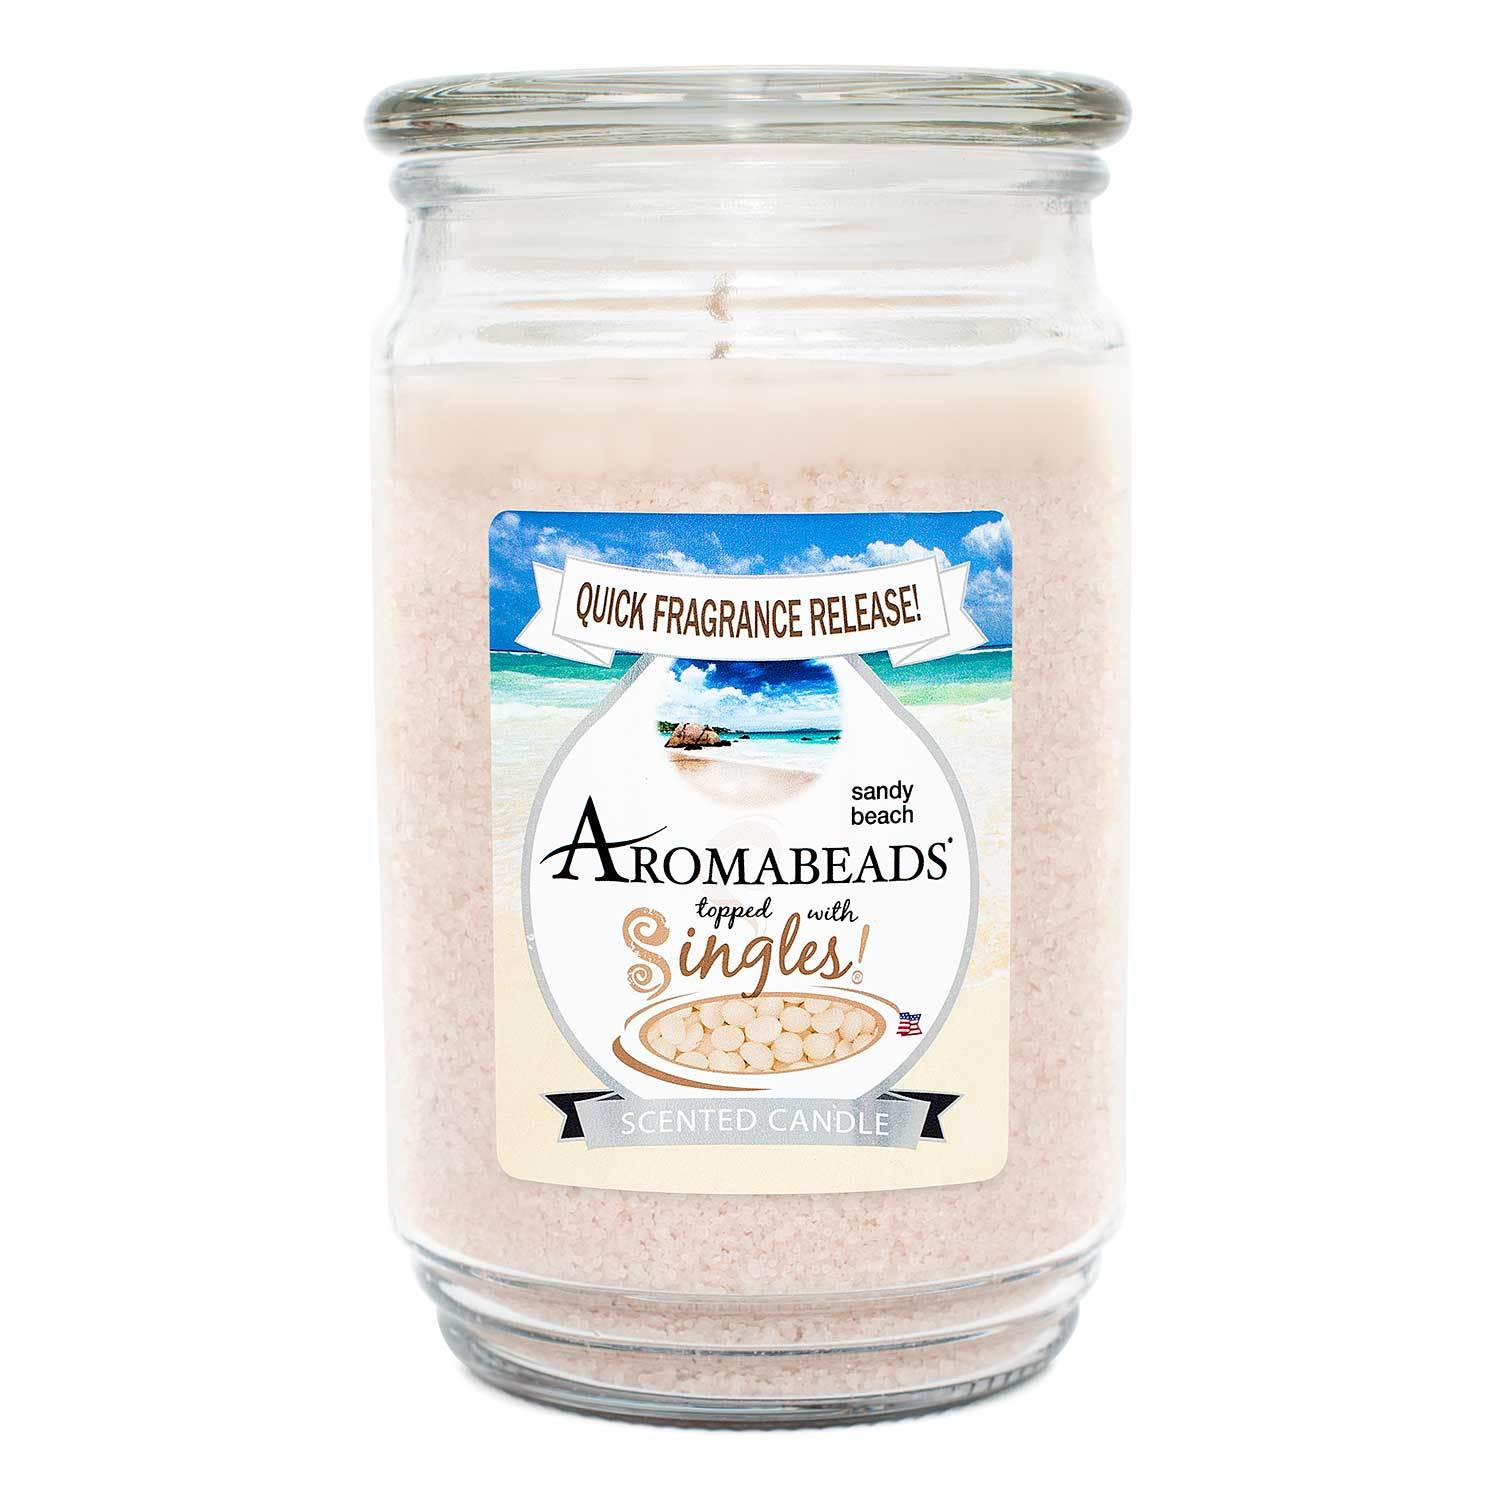 Aromabeads Sandy Beach Scented Candle Aromabeads Candlemart.com $ 9.99